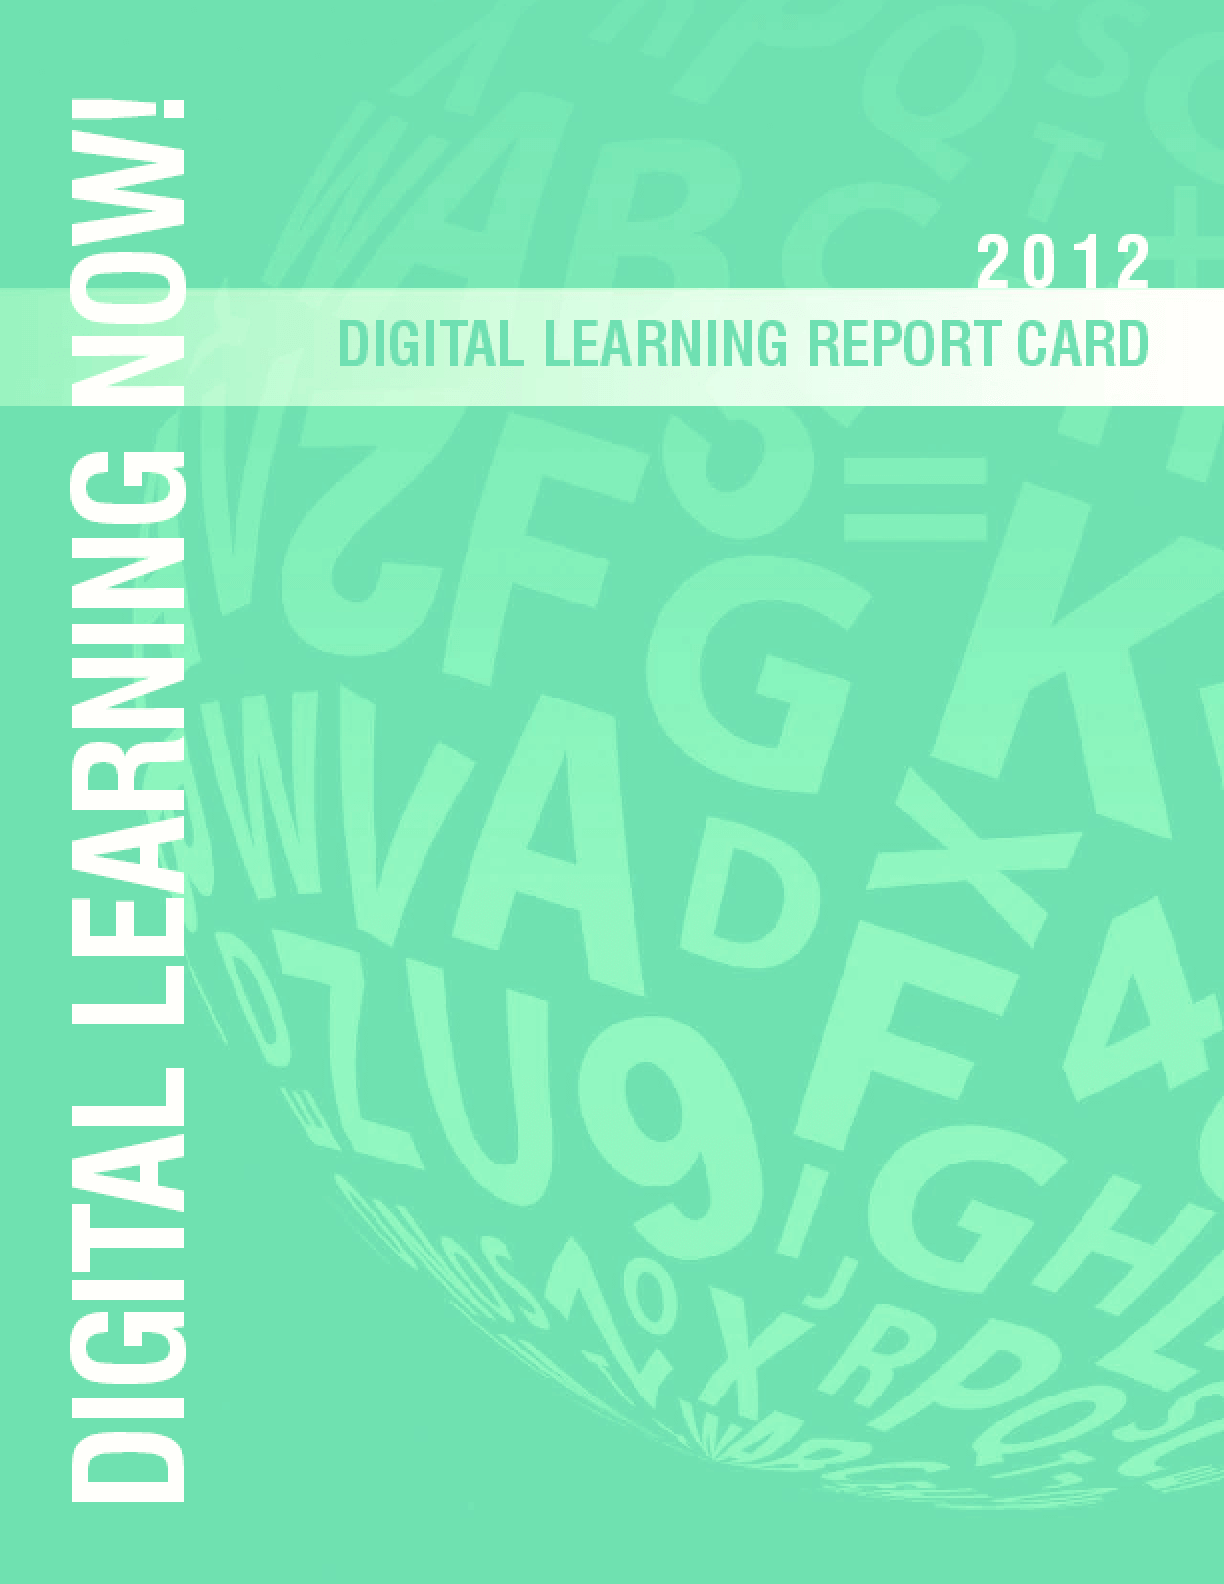 2012 Digital Learning Report Card